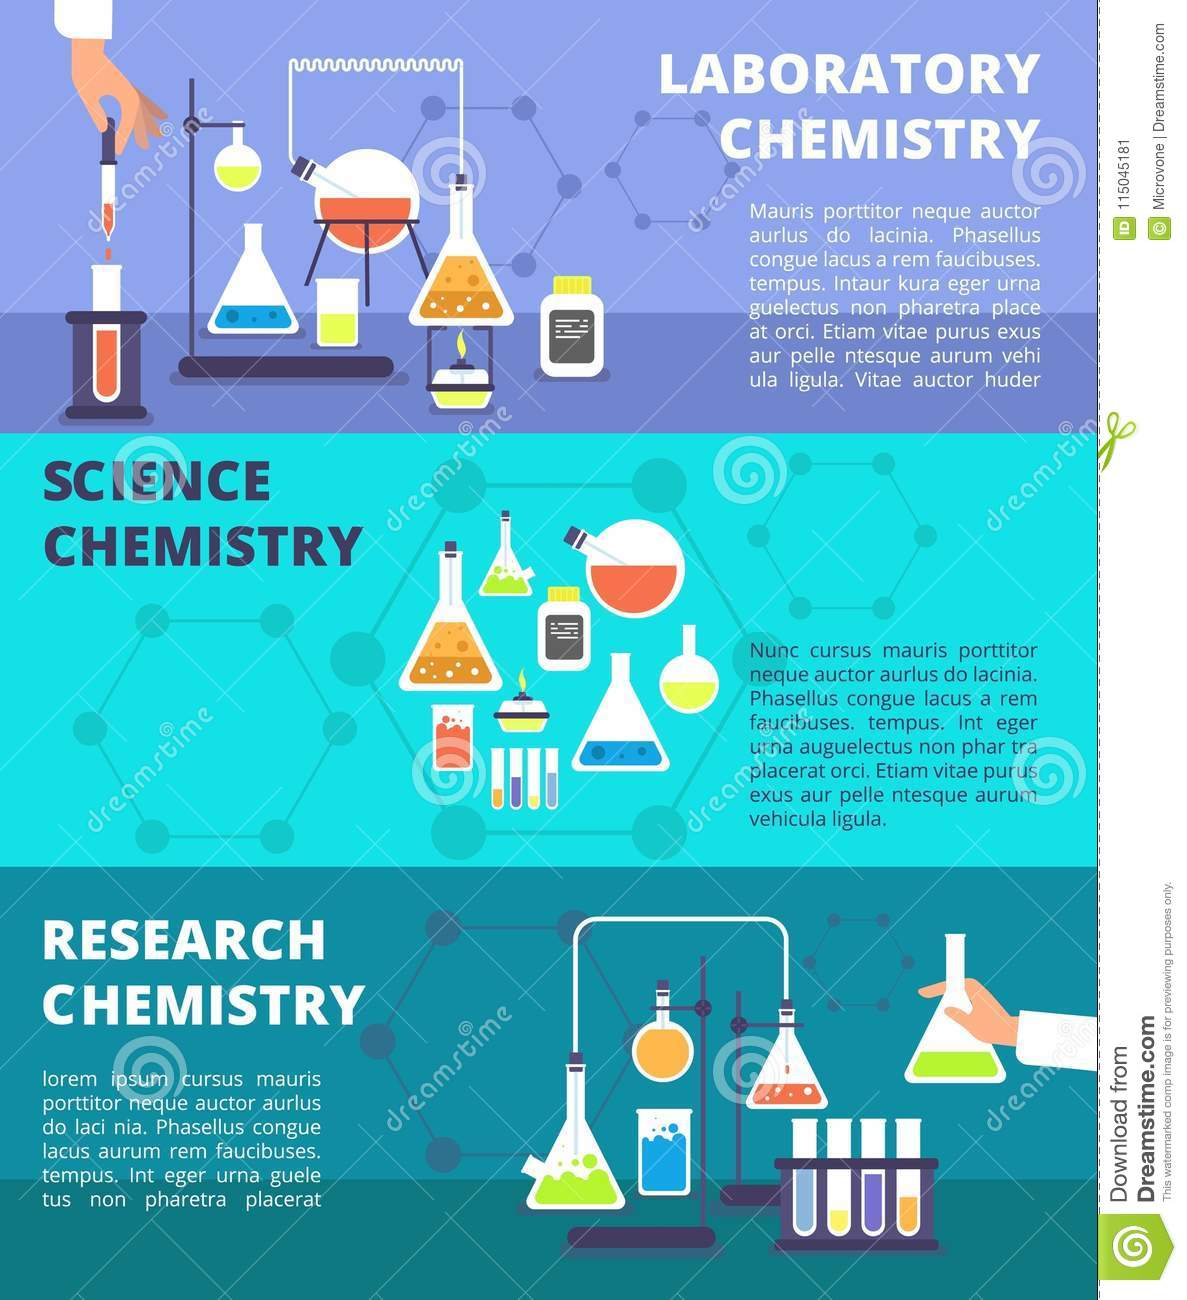 chemistry laboratory research lab and science technology biological